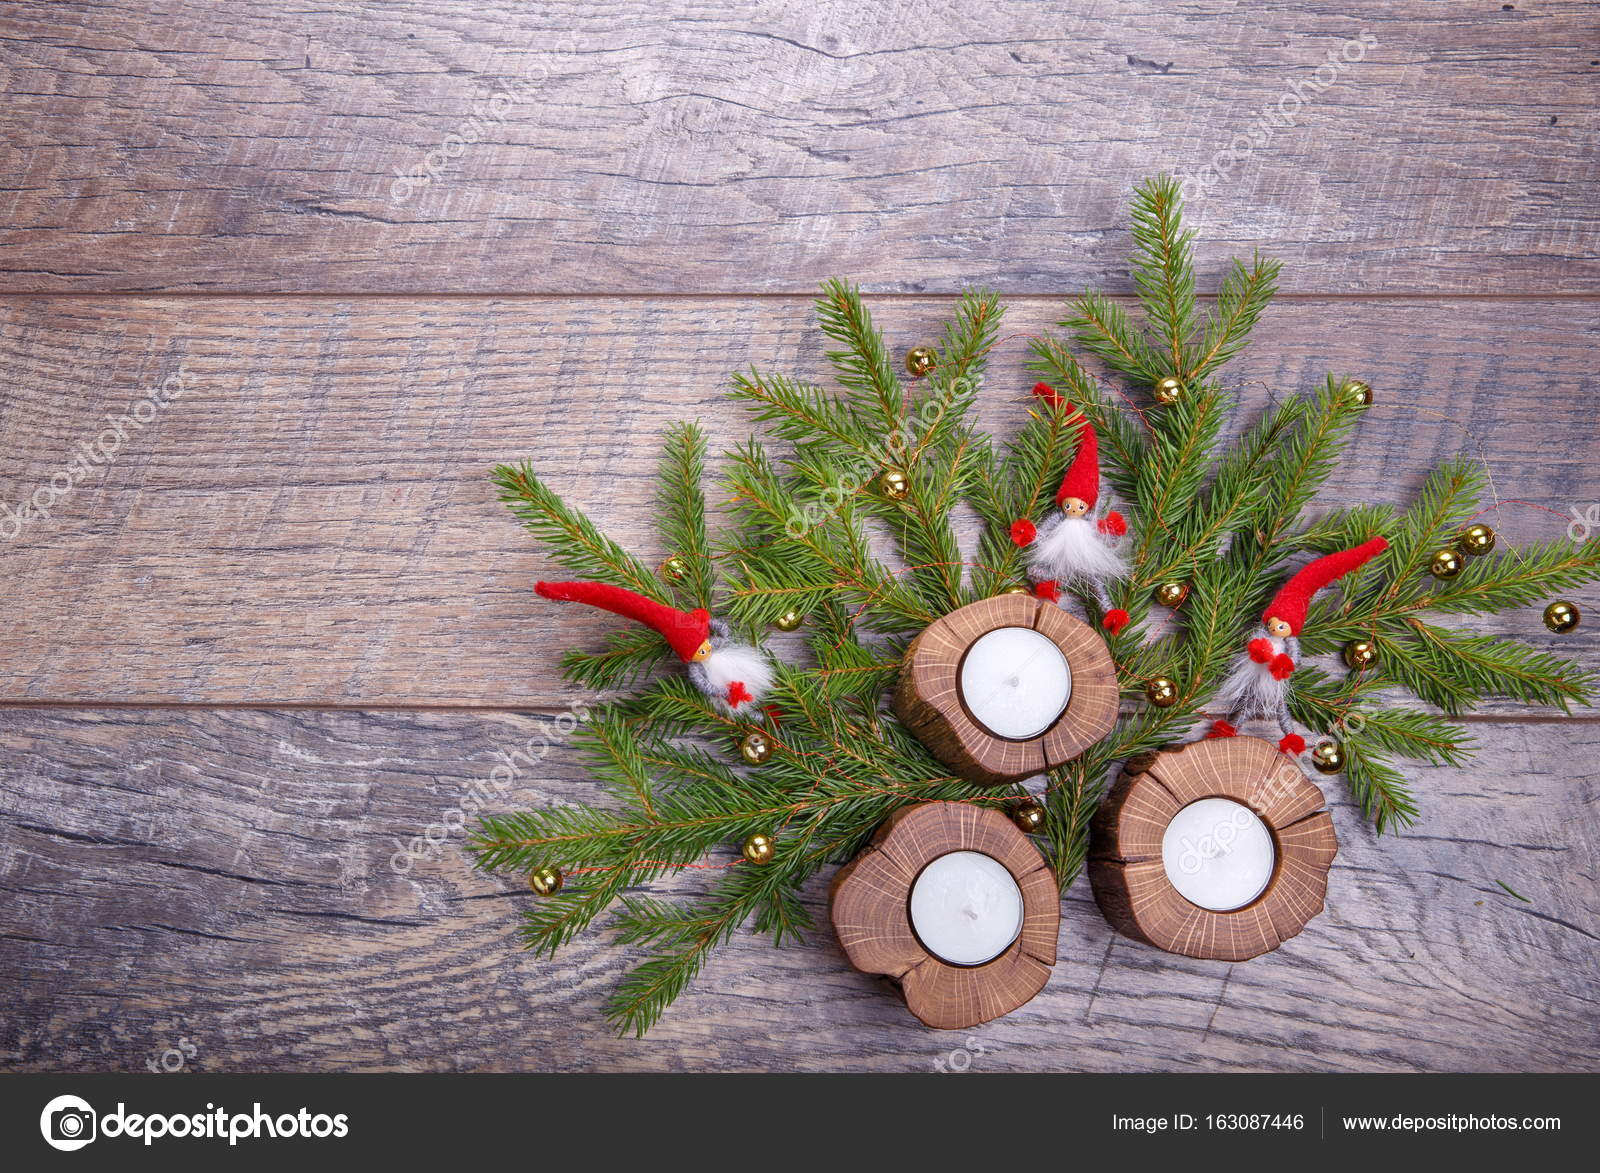 Christmas Gnome Decor.Christmas Wooden Background With Candles And Red Balls